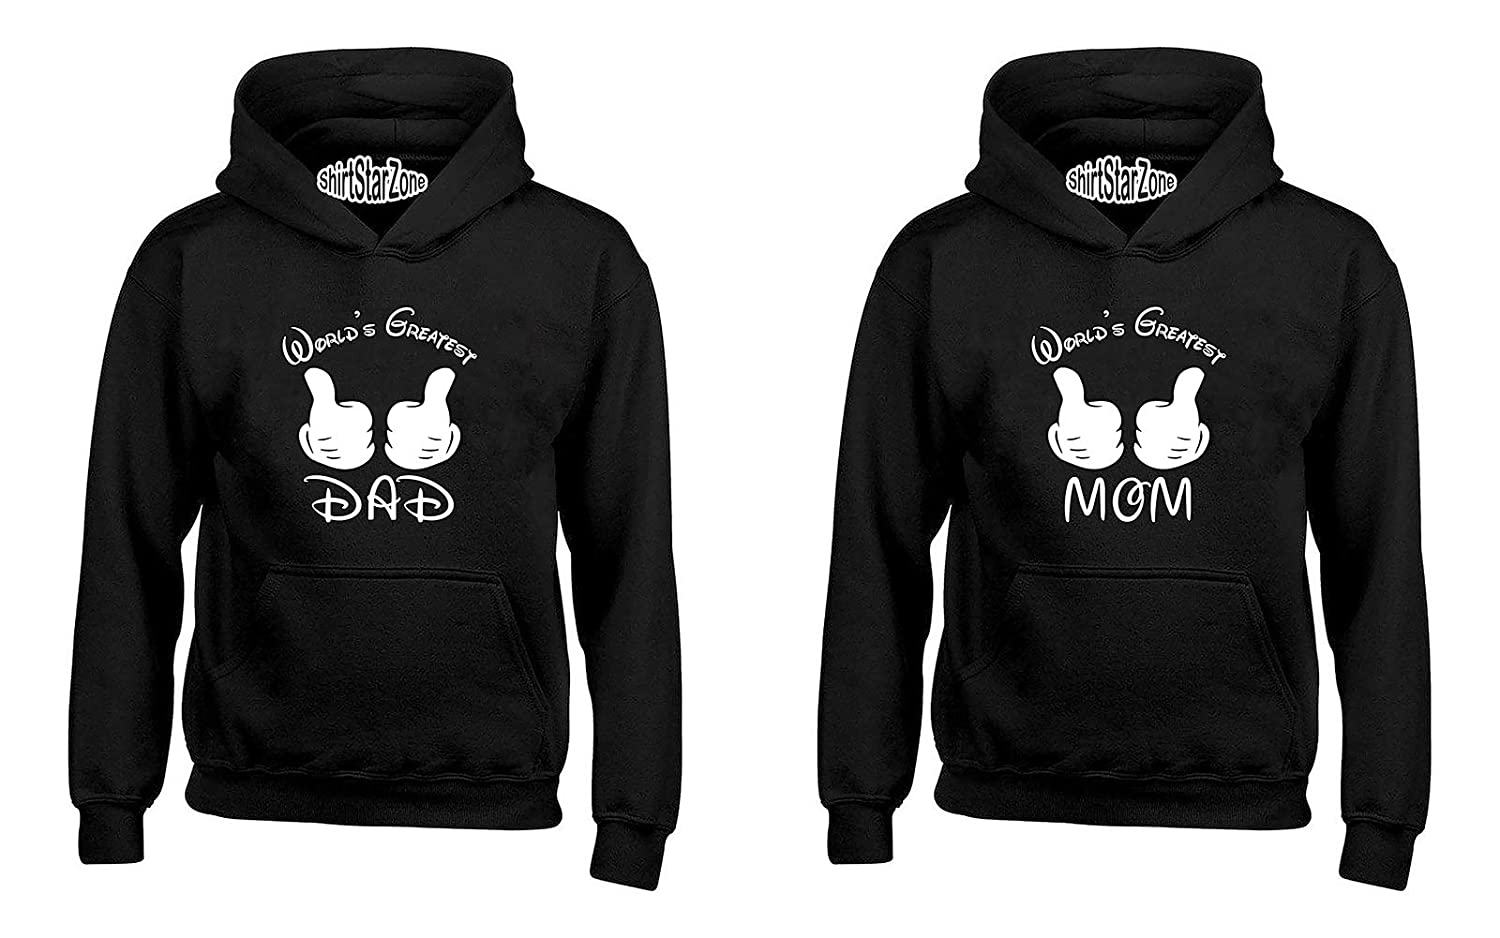 YSM Worlds Greatest Dad Worlds Greatest Mom Fathers Matching Couples Hoodies